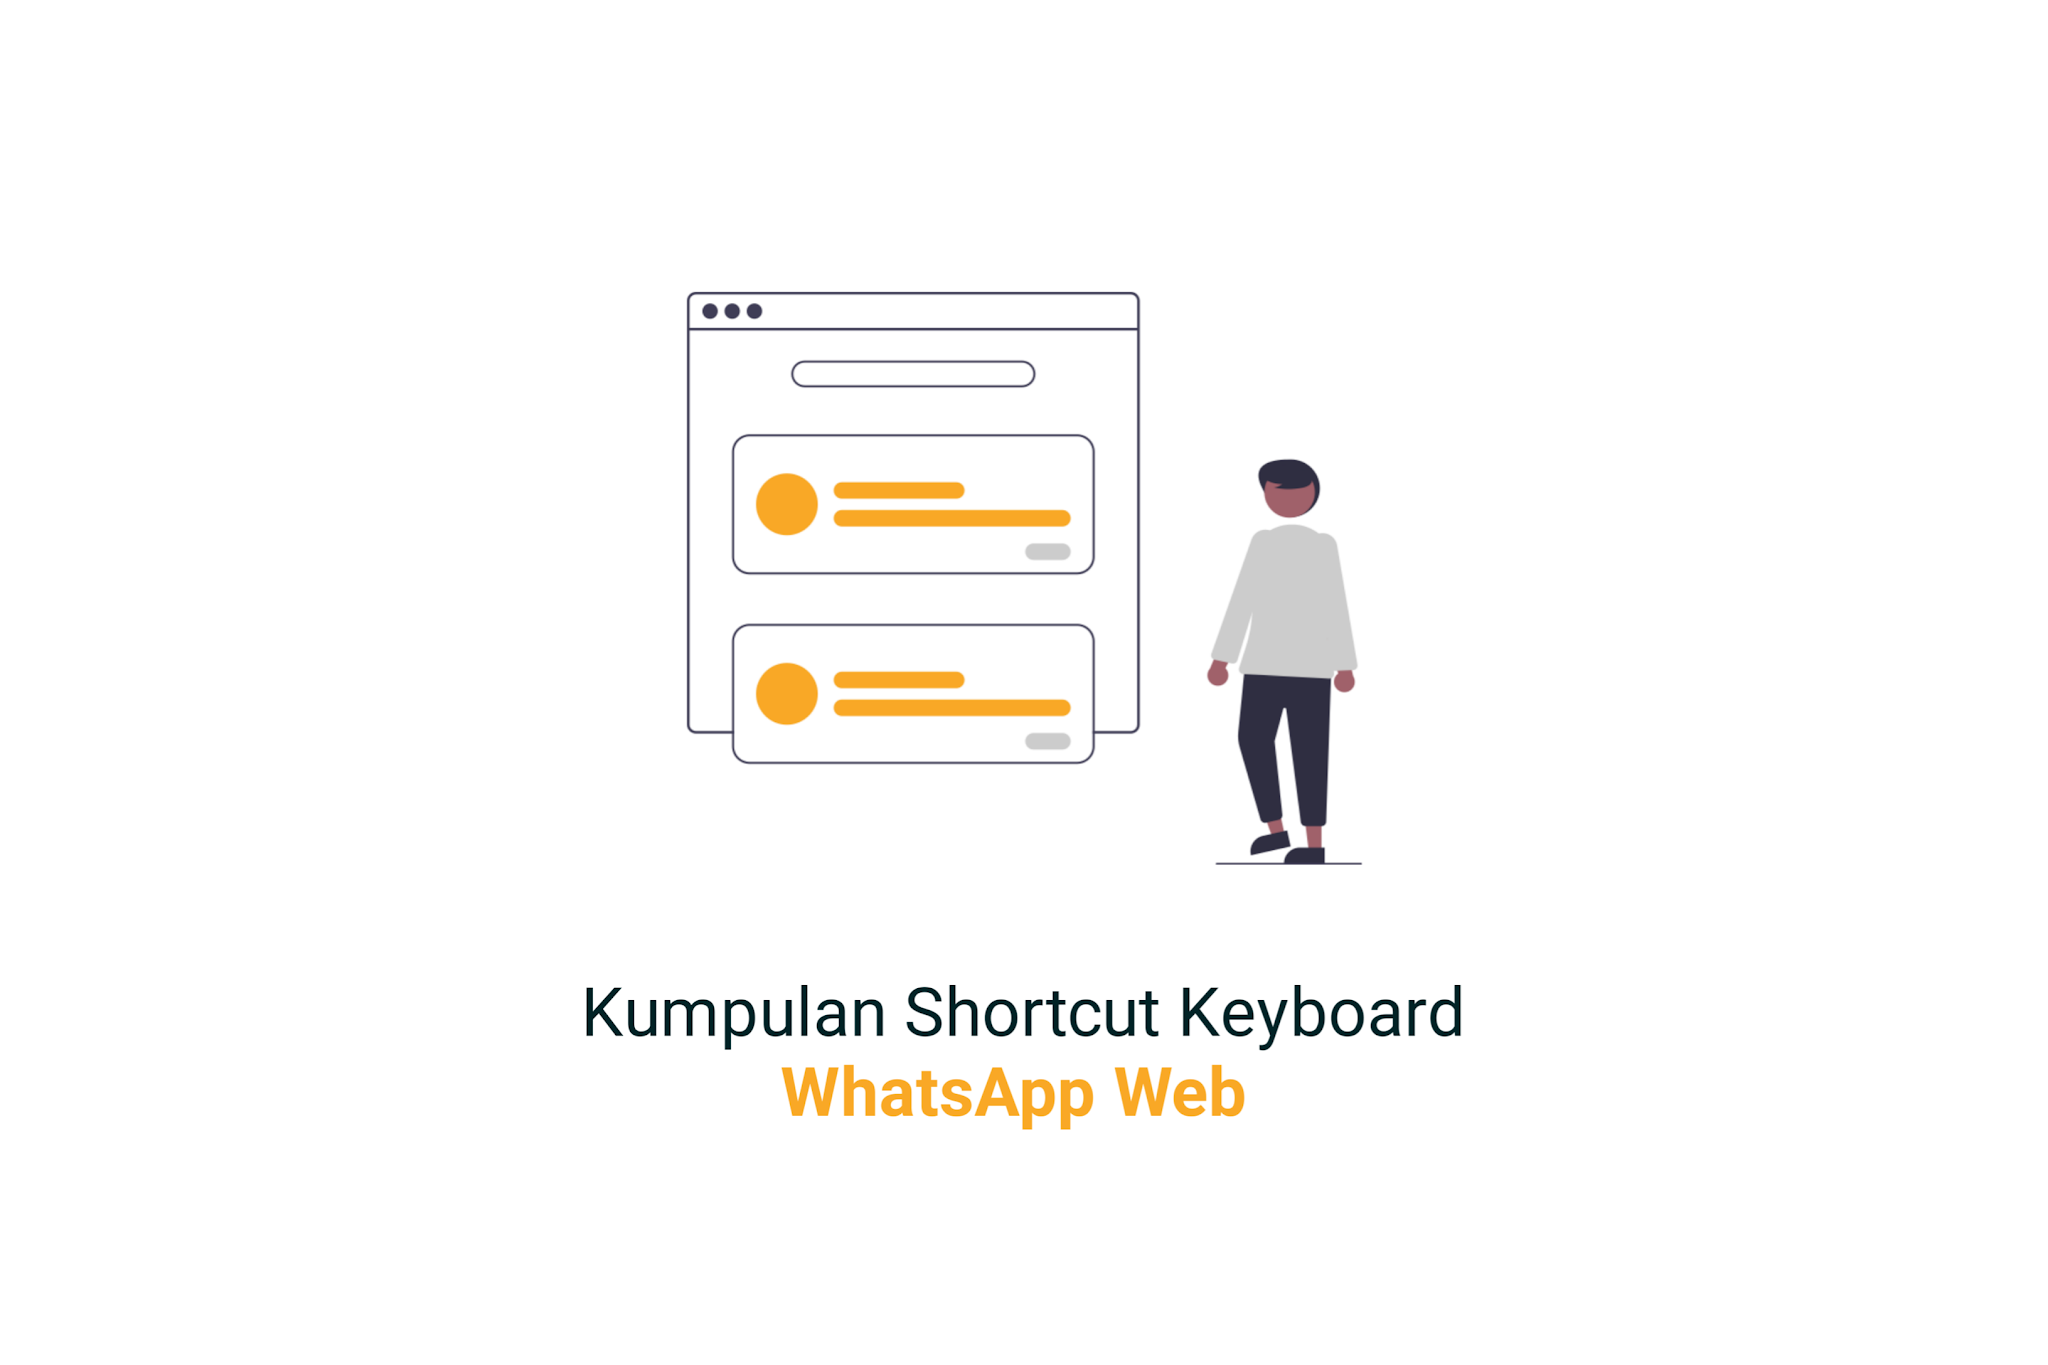 Kumpulan Shortcut Keyboard di WhatsApp Web